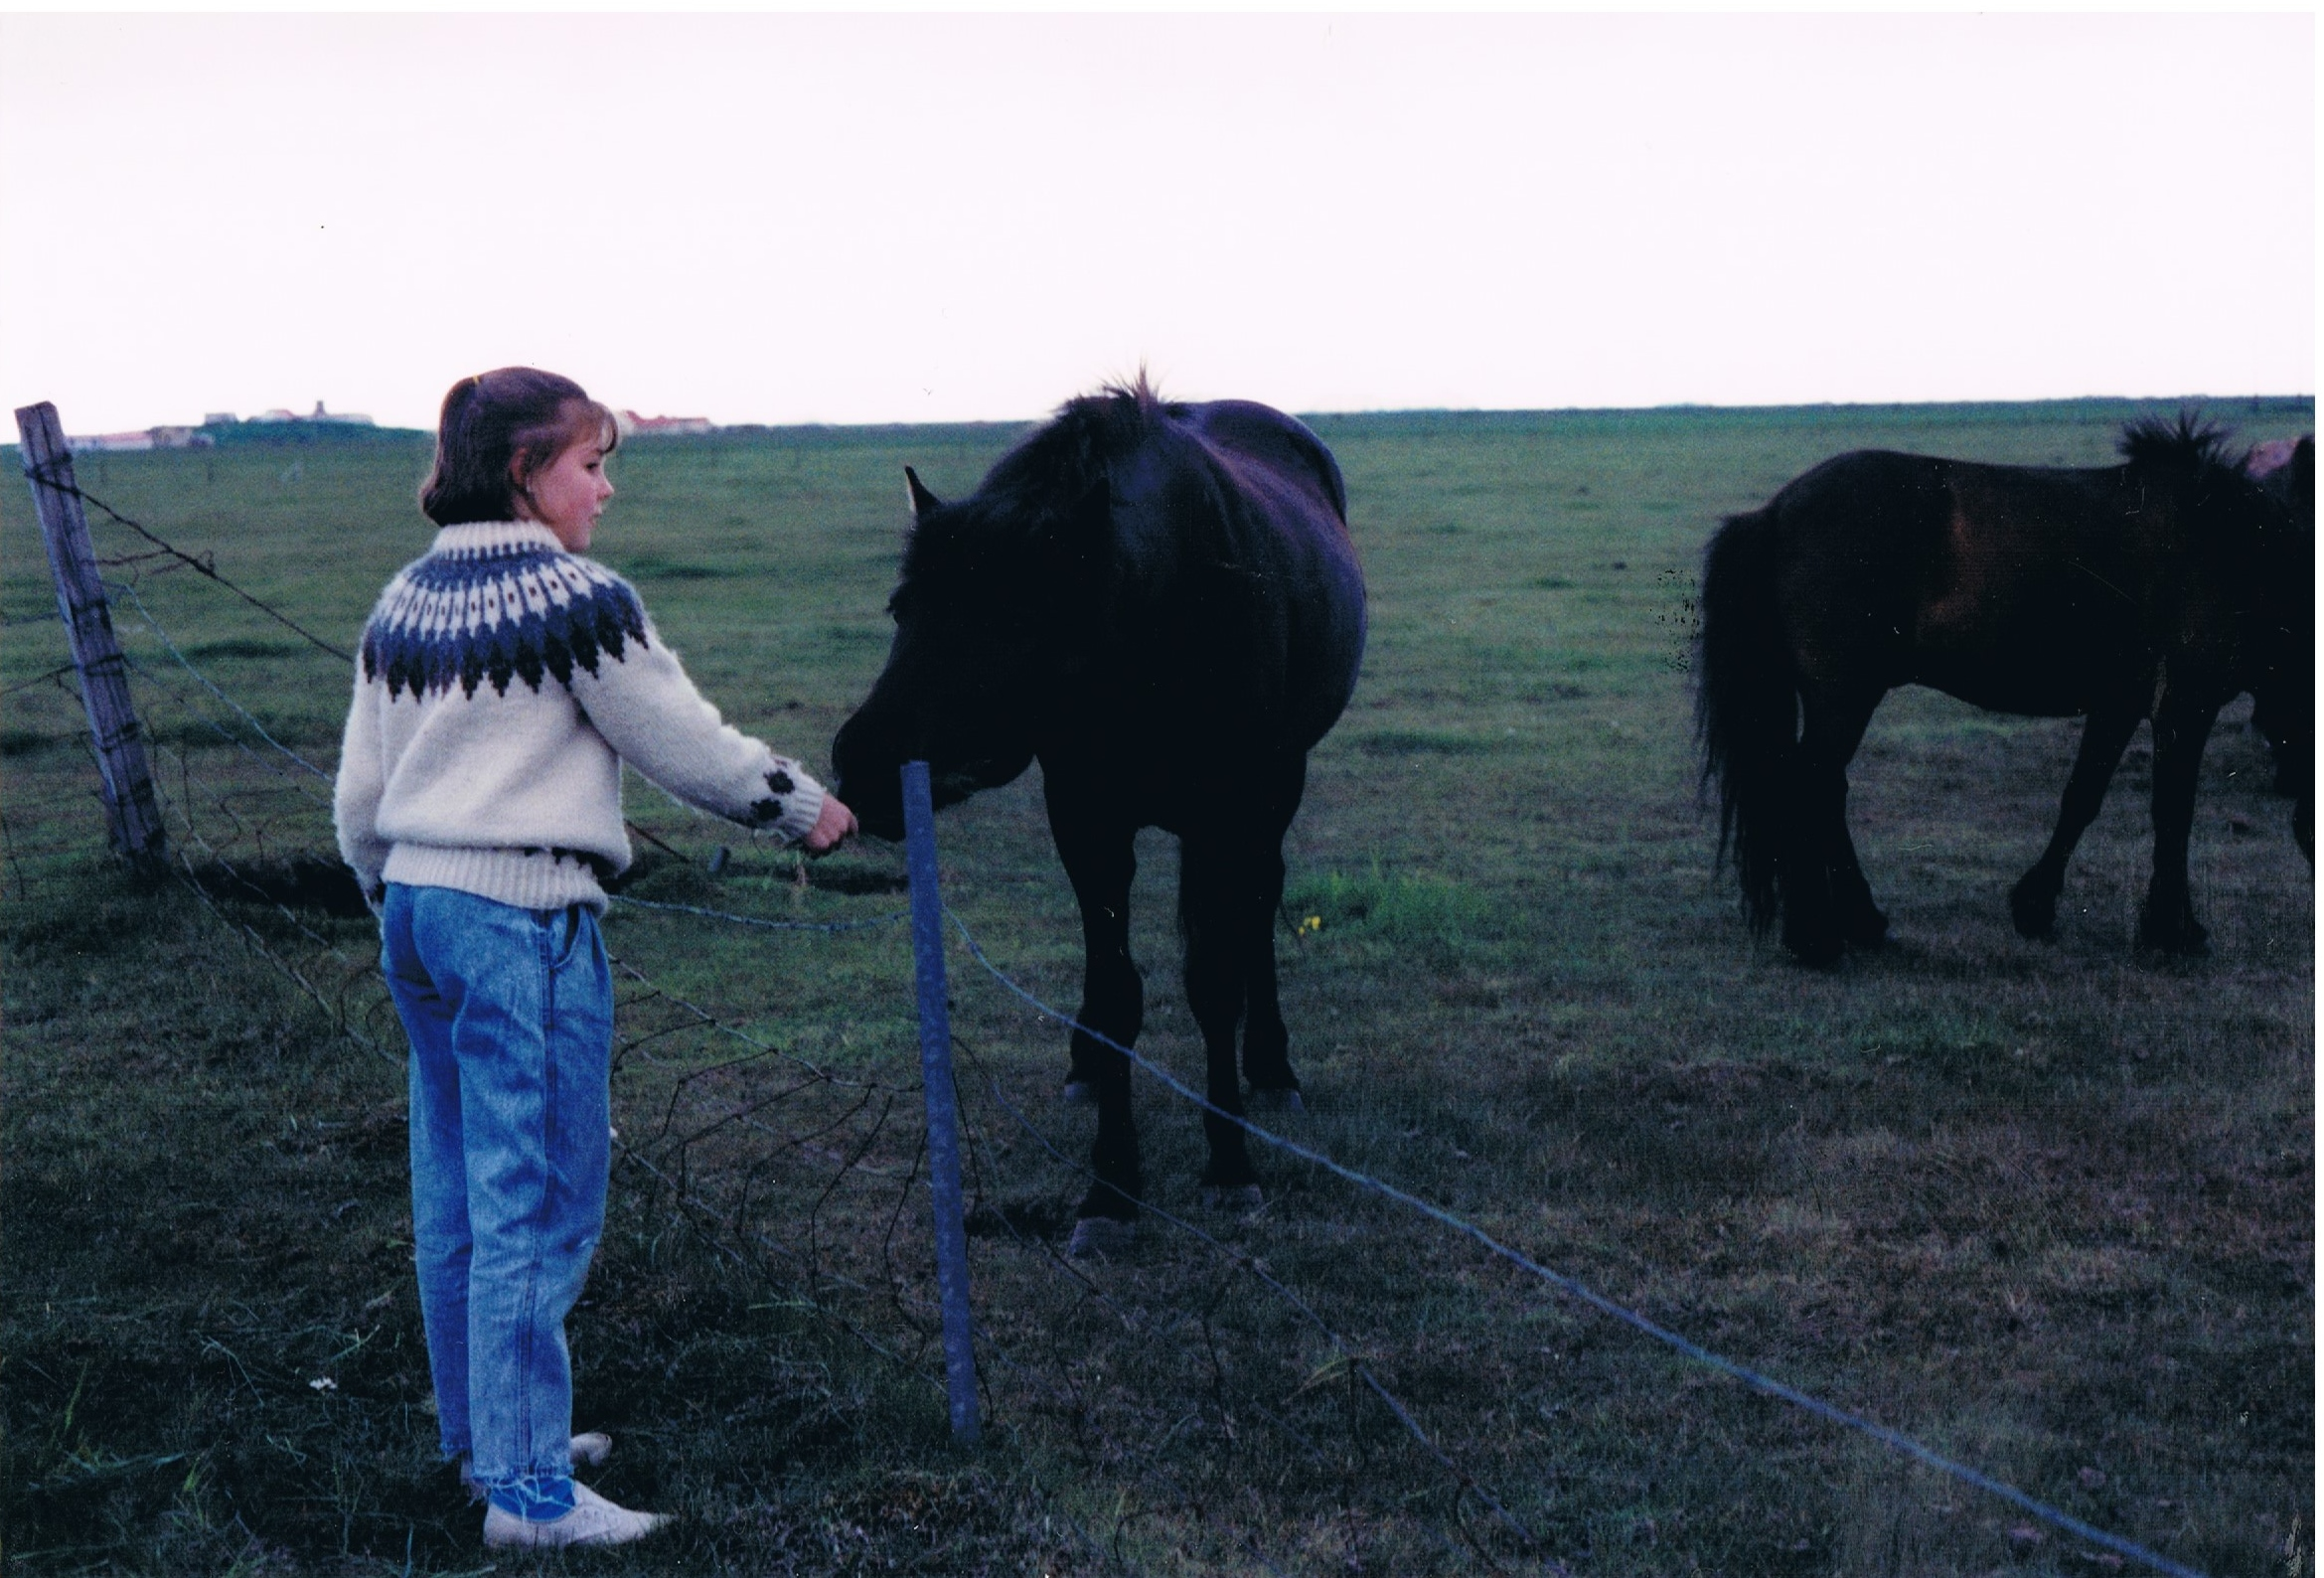 Hanging with the Icelandic horses.